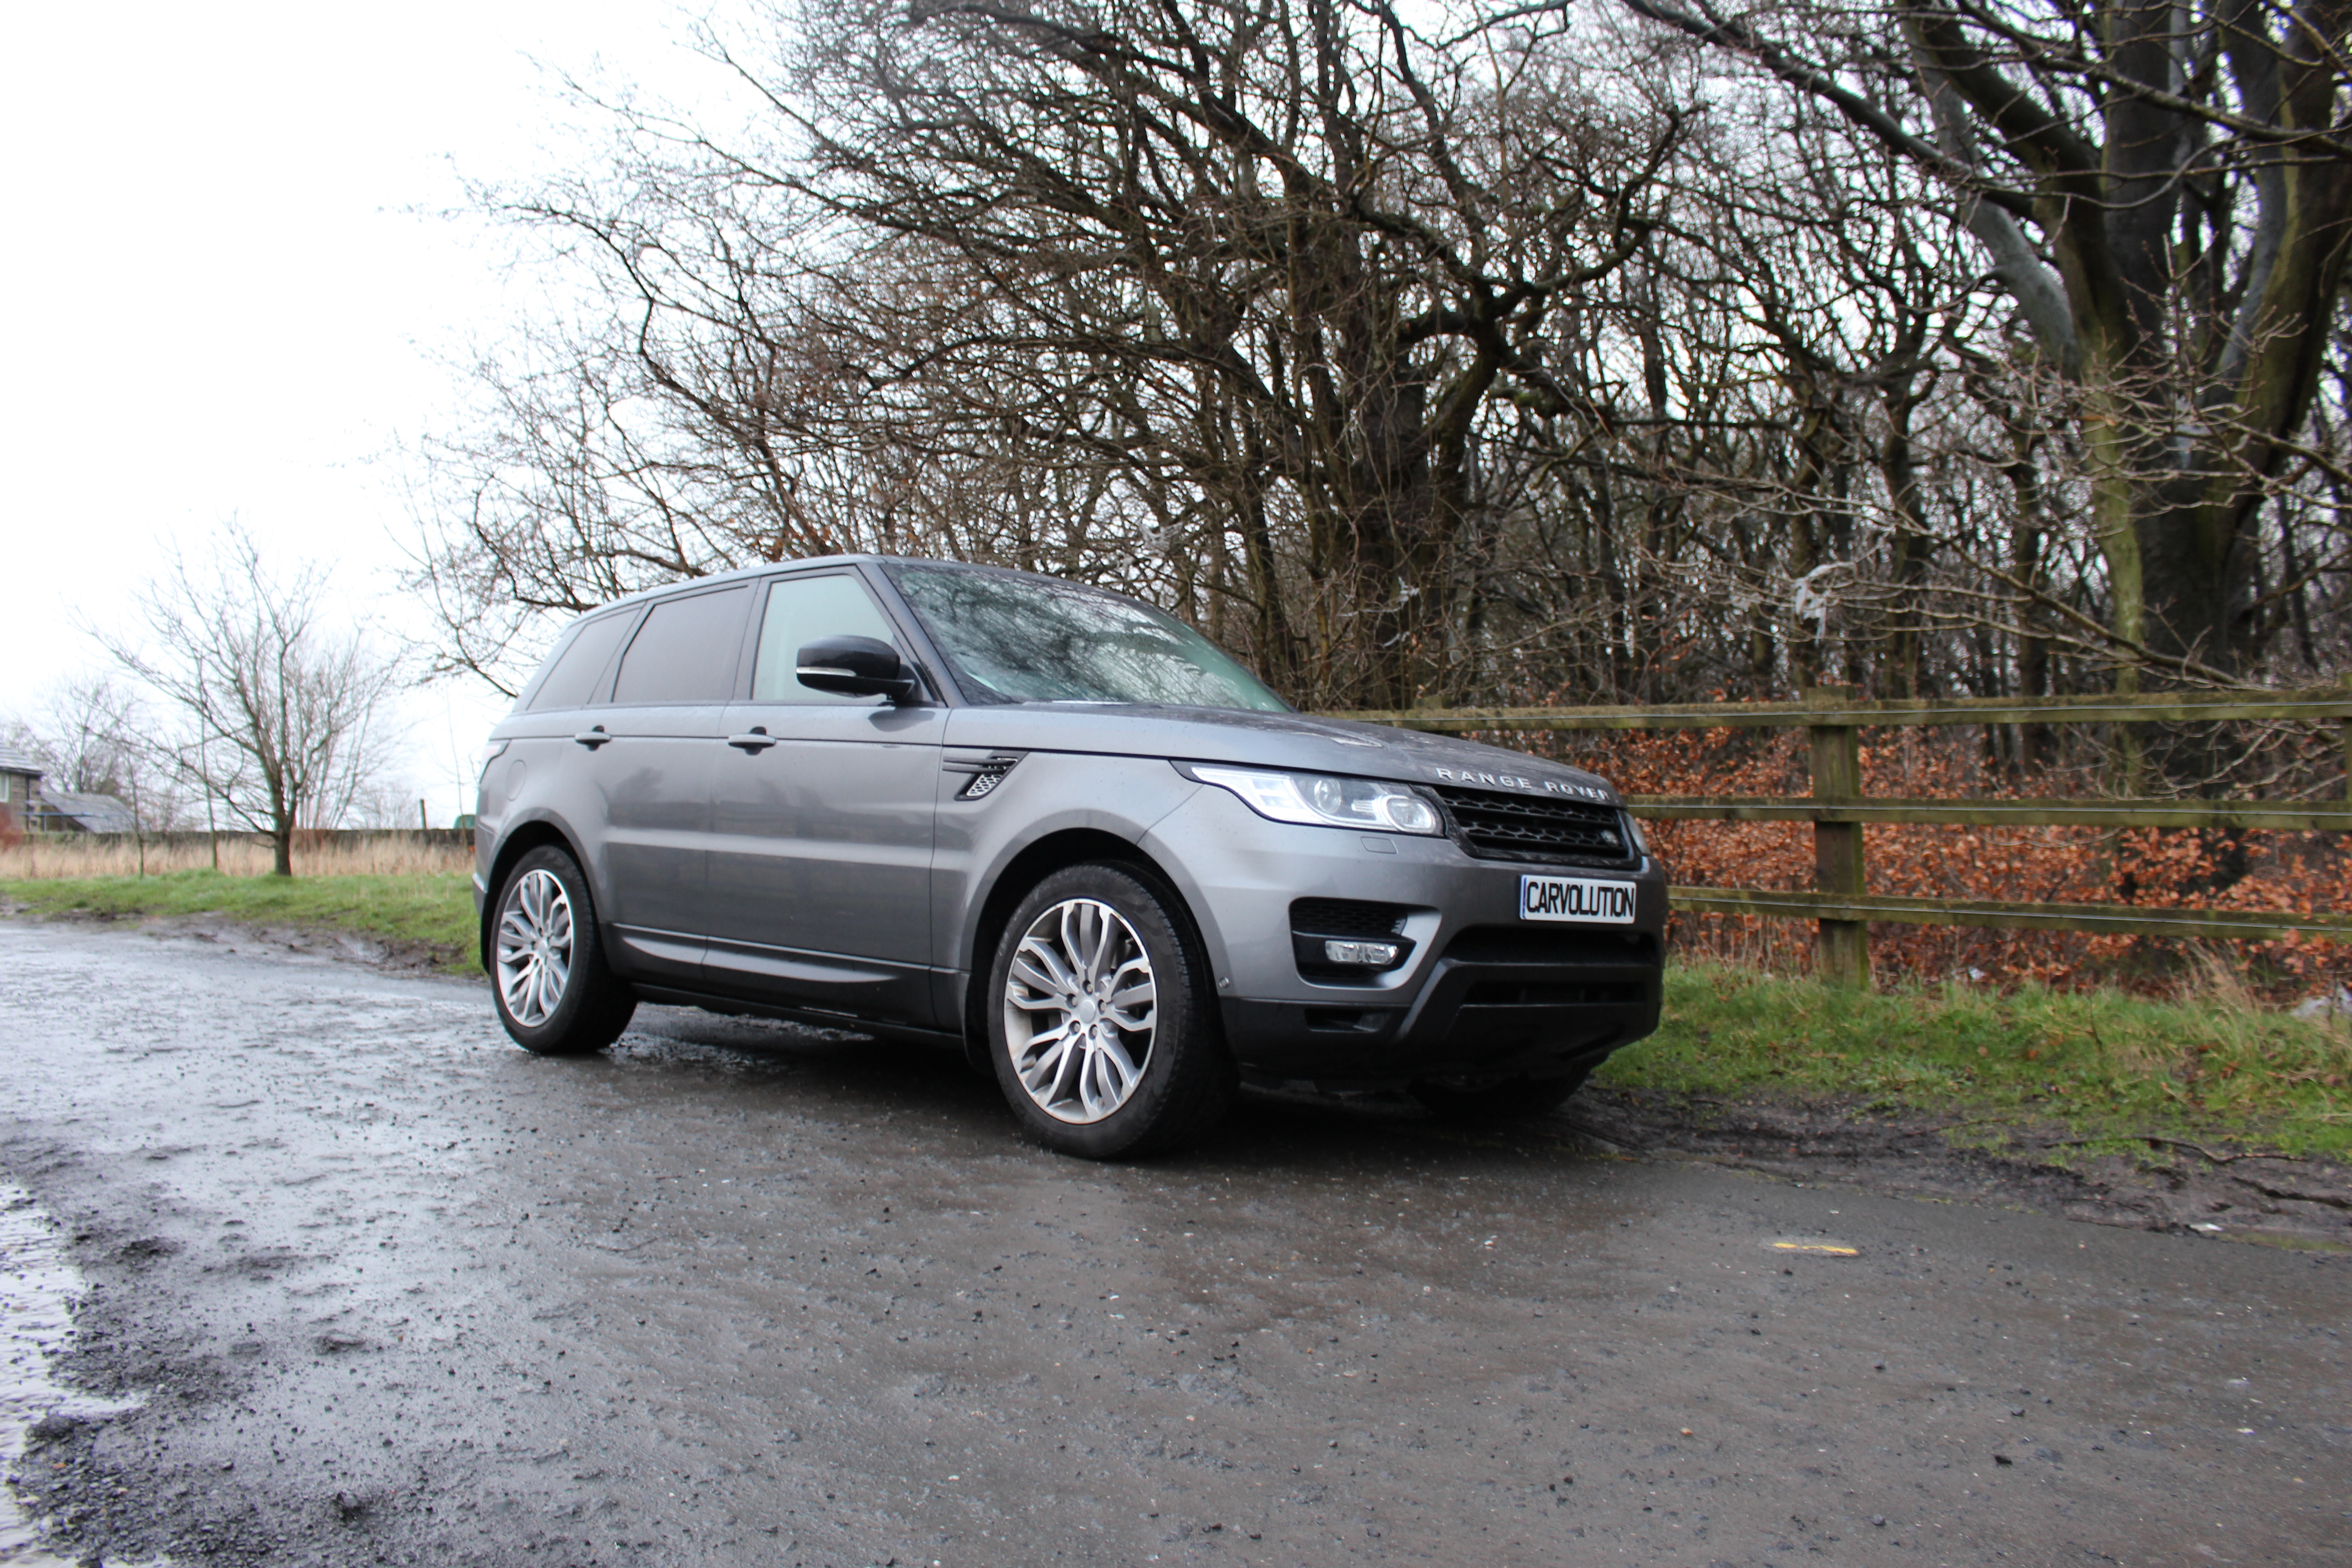 2015 15 land rover range rover sport 3 0 sdv6 hse dynamic. Black Bedroom Furniture Sets. Home Design Ideas